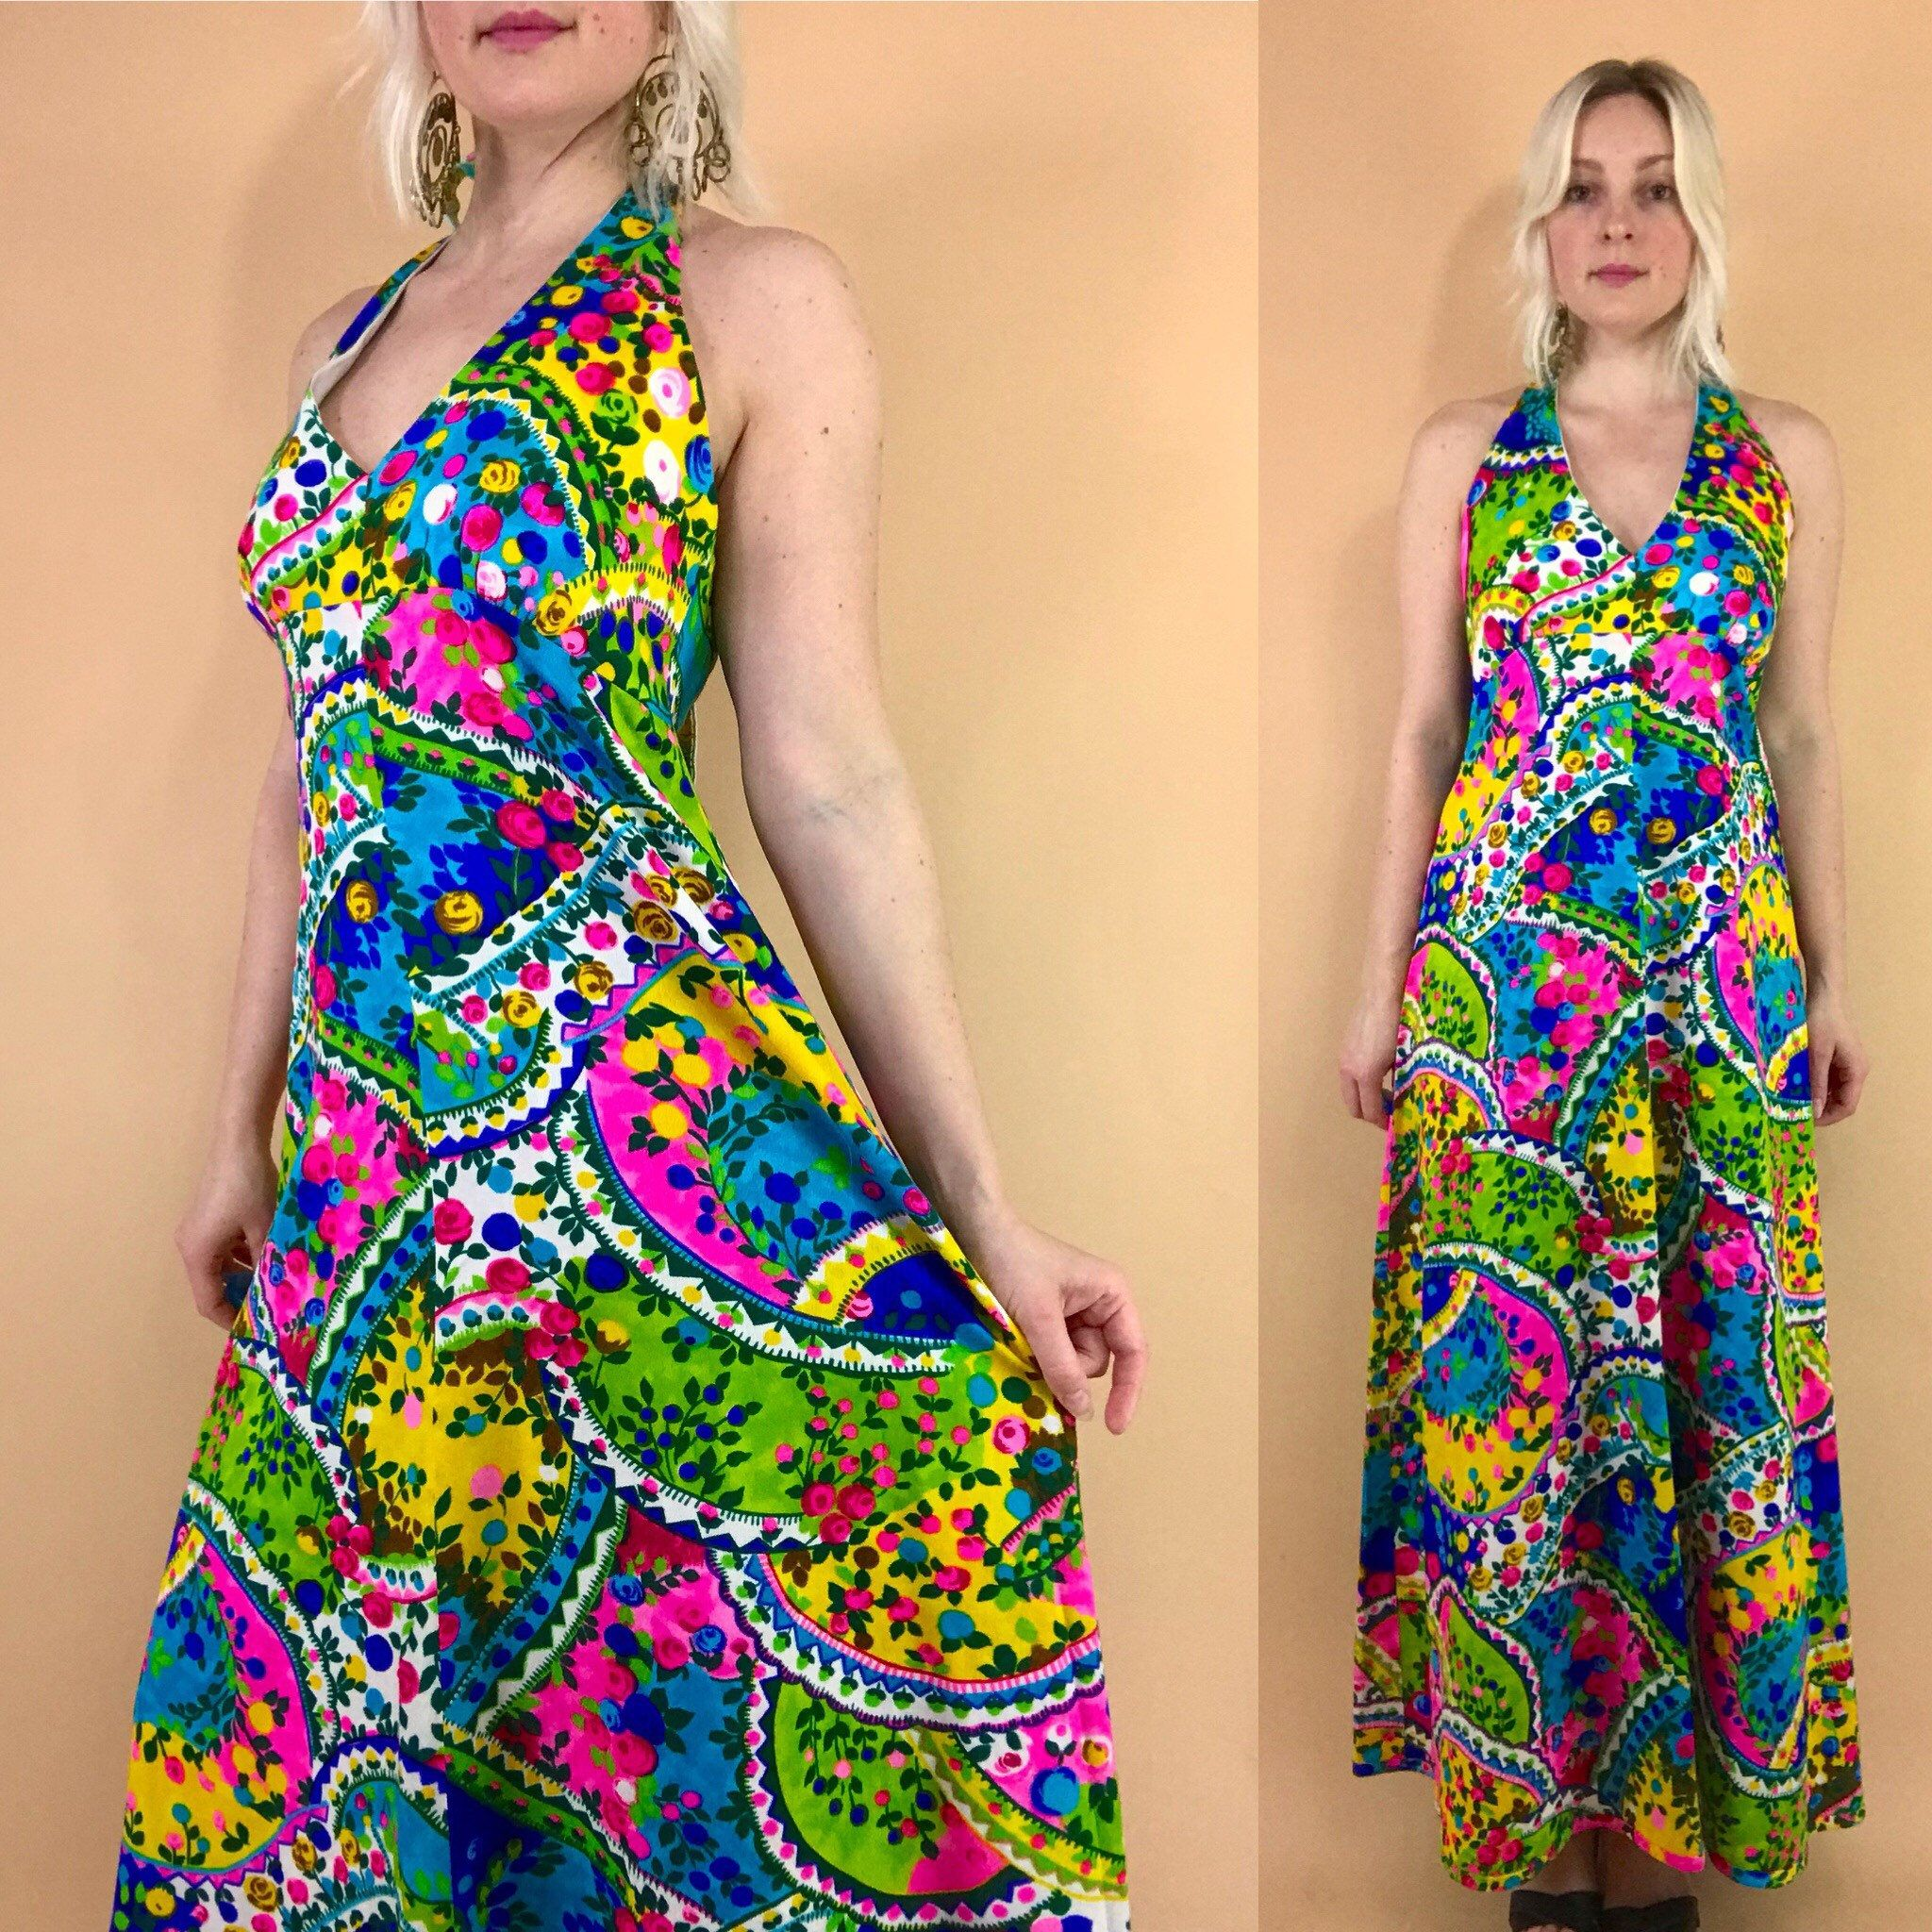 2417dba1dca 1960s psychedelic halter top maxi dress open back neon day glo tropical  swirling floral print full length Hawaiian dress retro 60s 70s gown